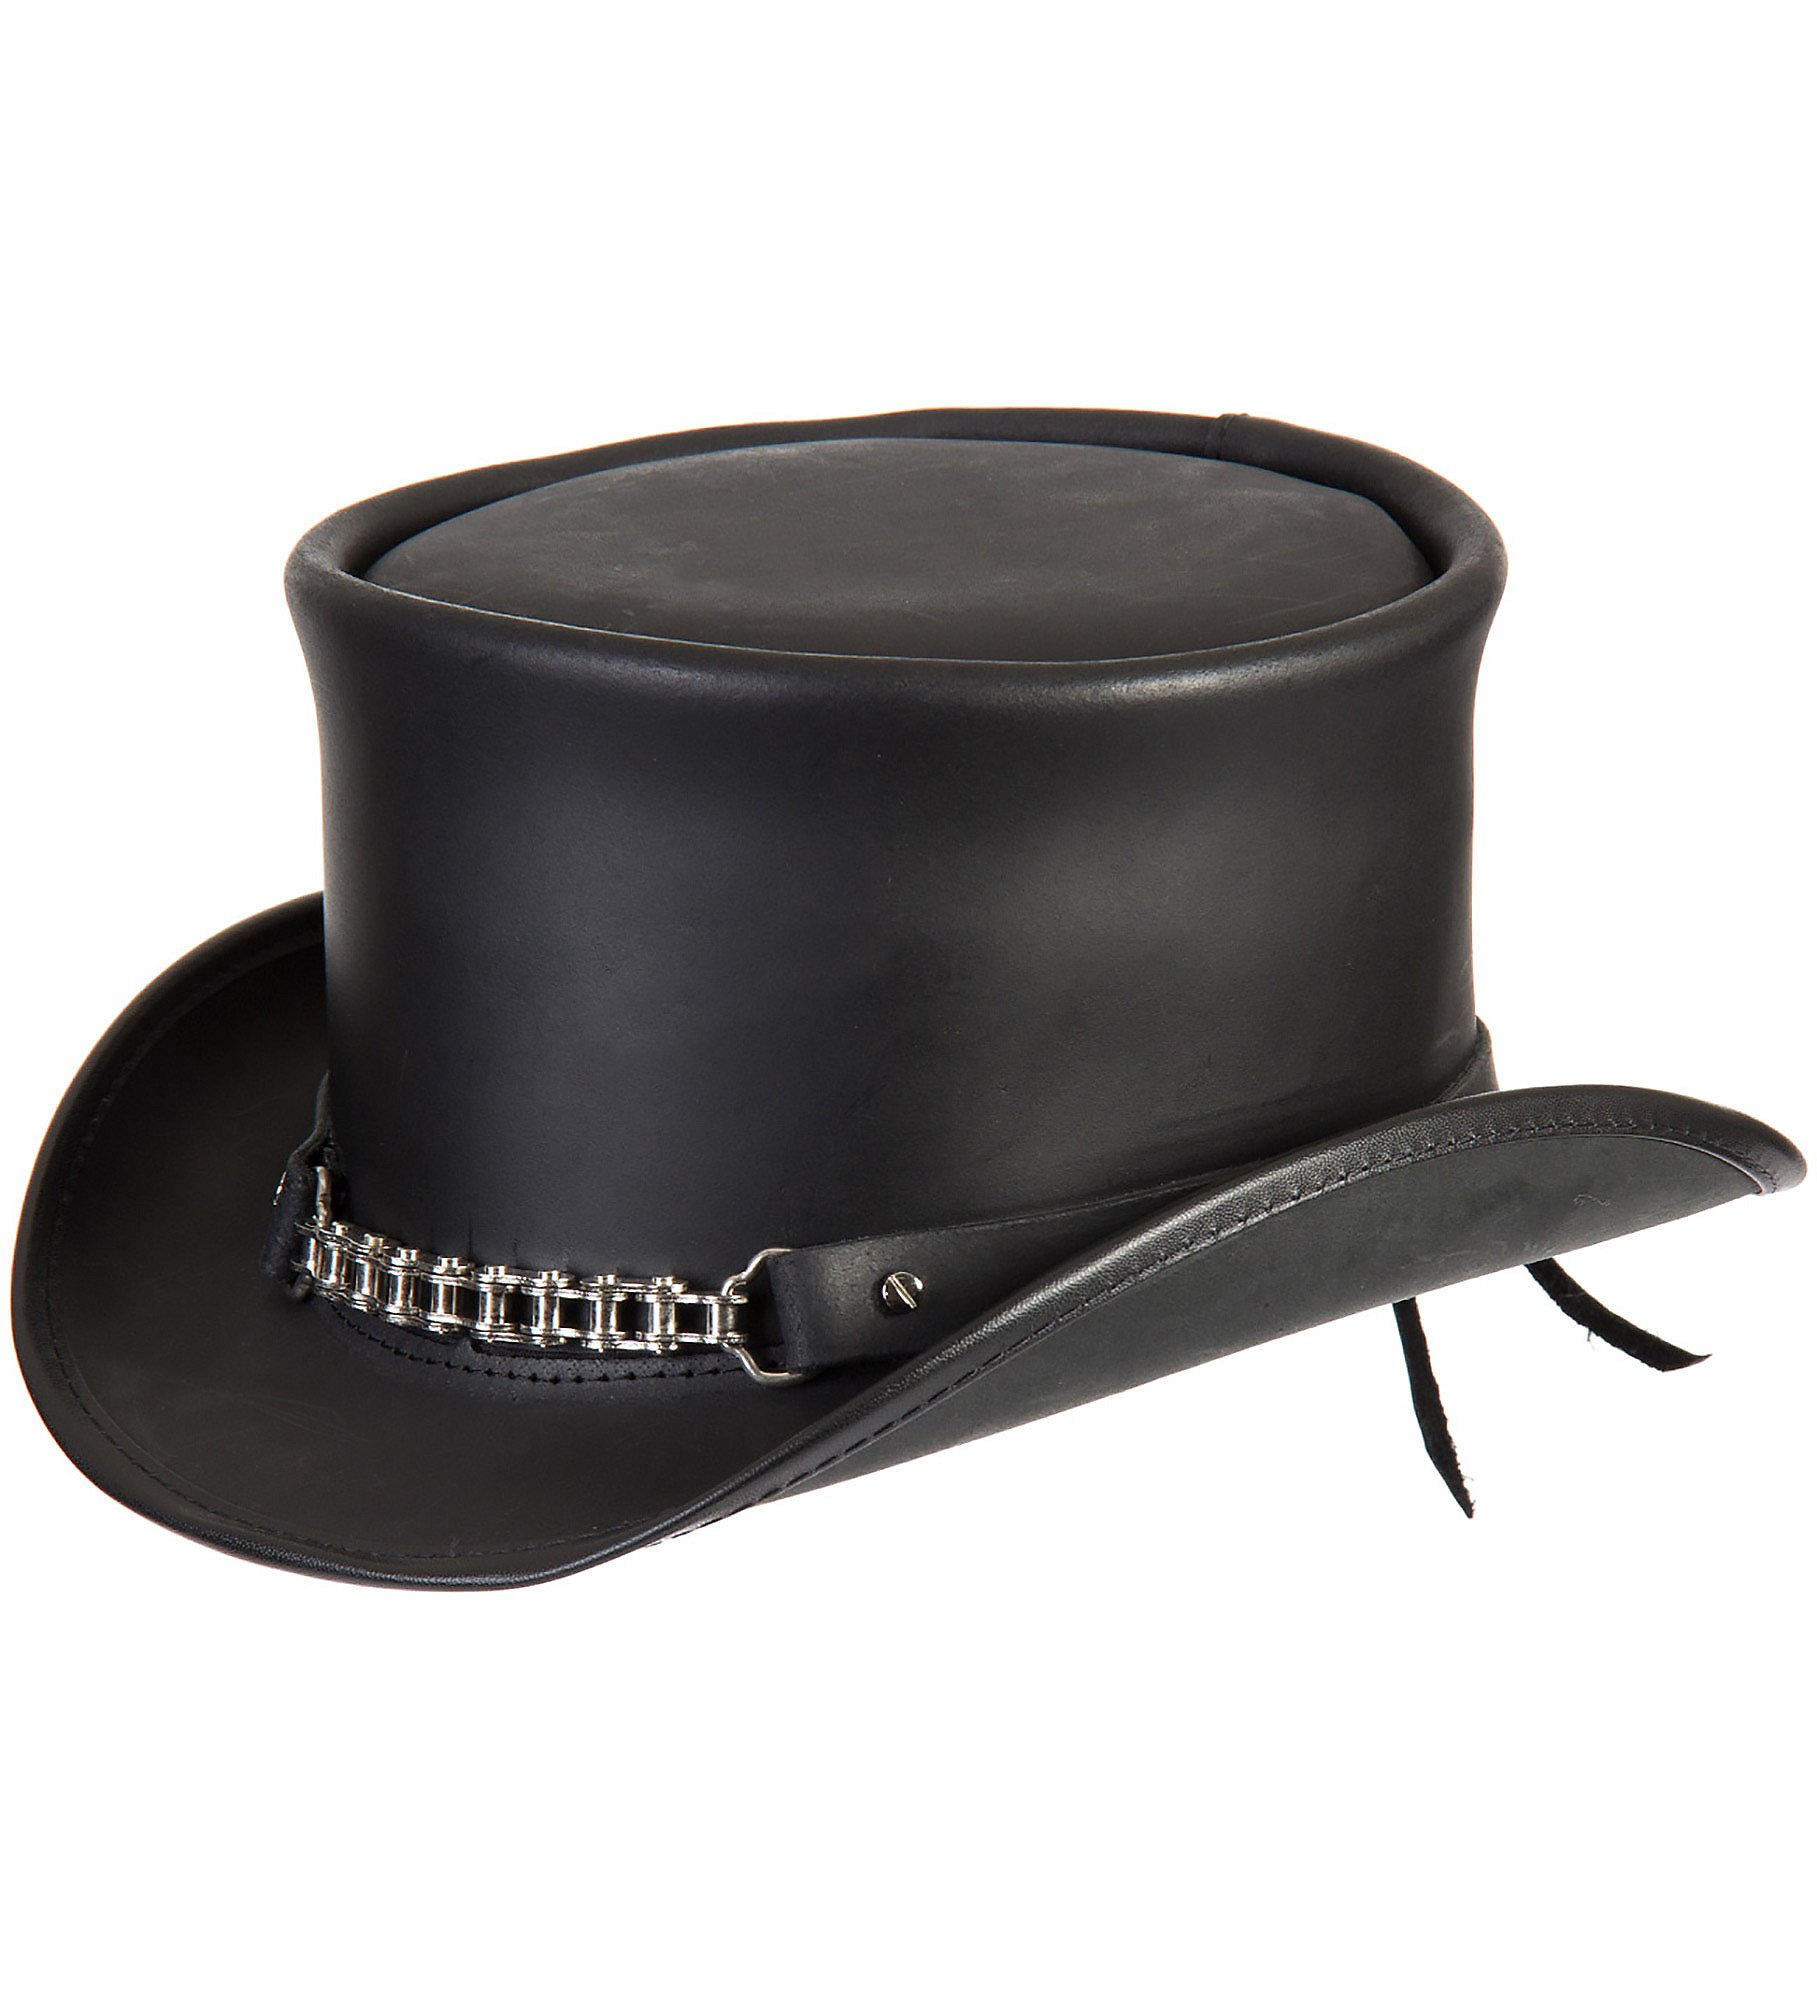 Steampunk El Dorado Leather Top Hat, Black, Size Medium/Large (7 1/8–7 1/4)